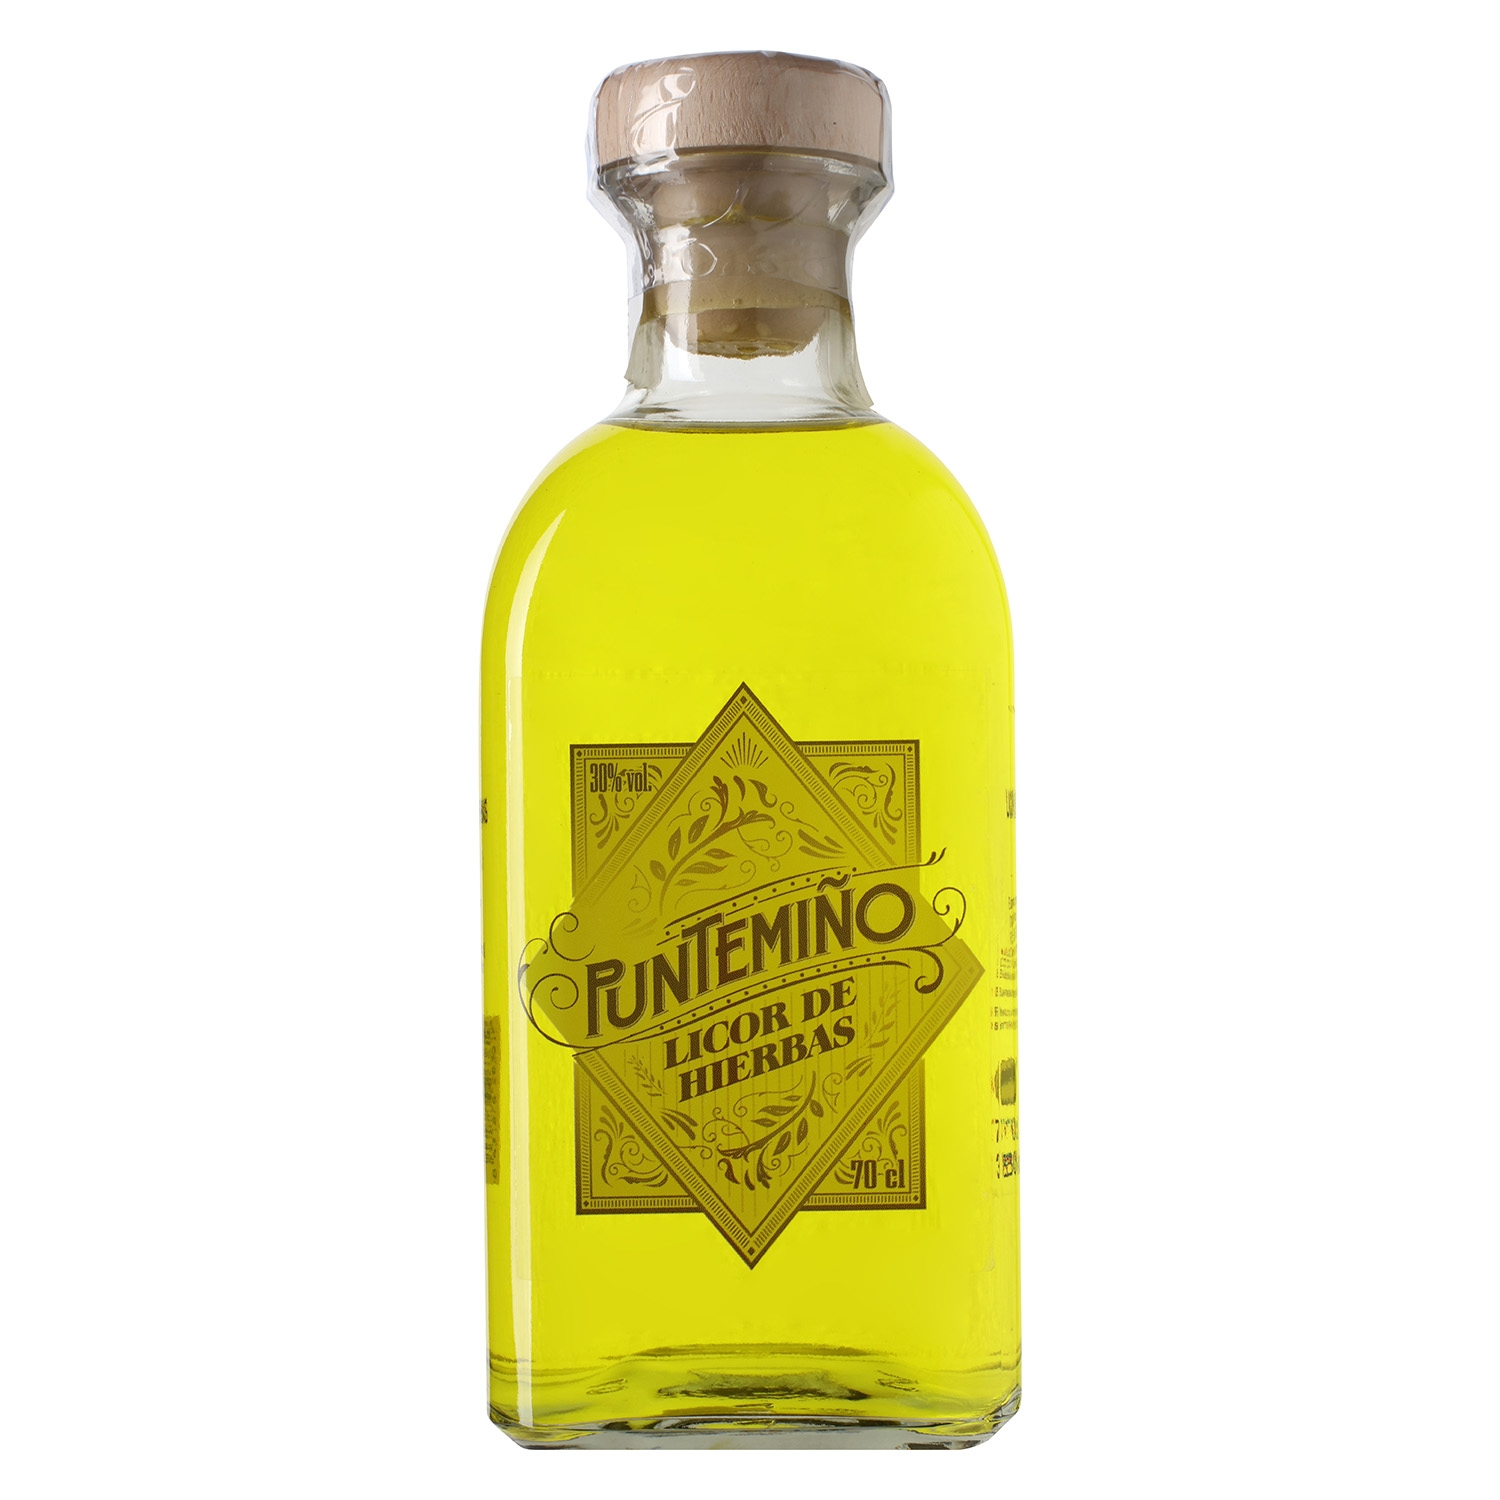 Licor de hierbas Puntemiño 70 cl.